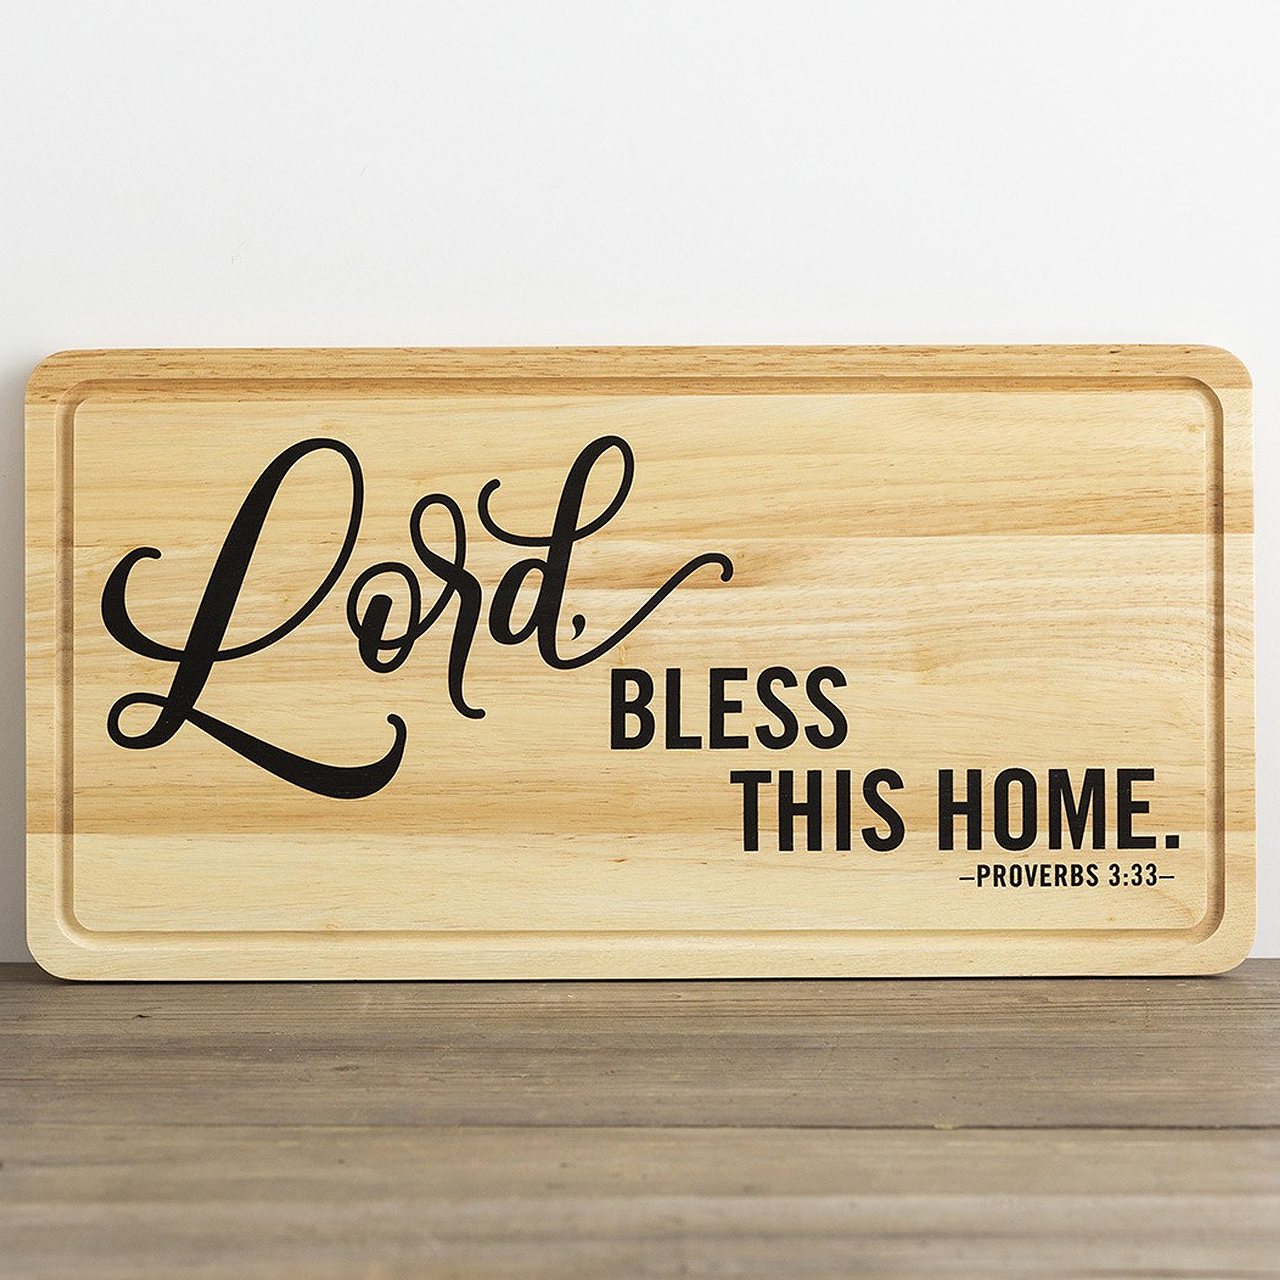 Bless This Home Decorative Cutting Board Wall Art 90901 F C Ziegler Company